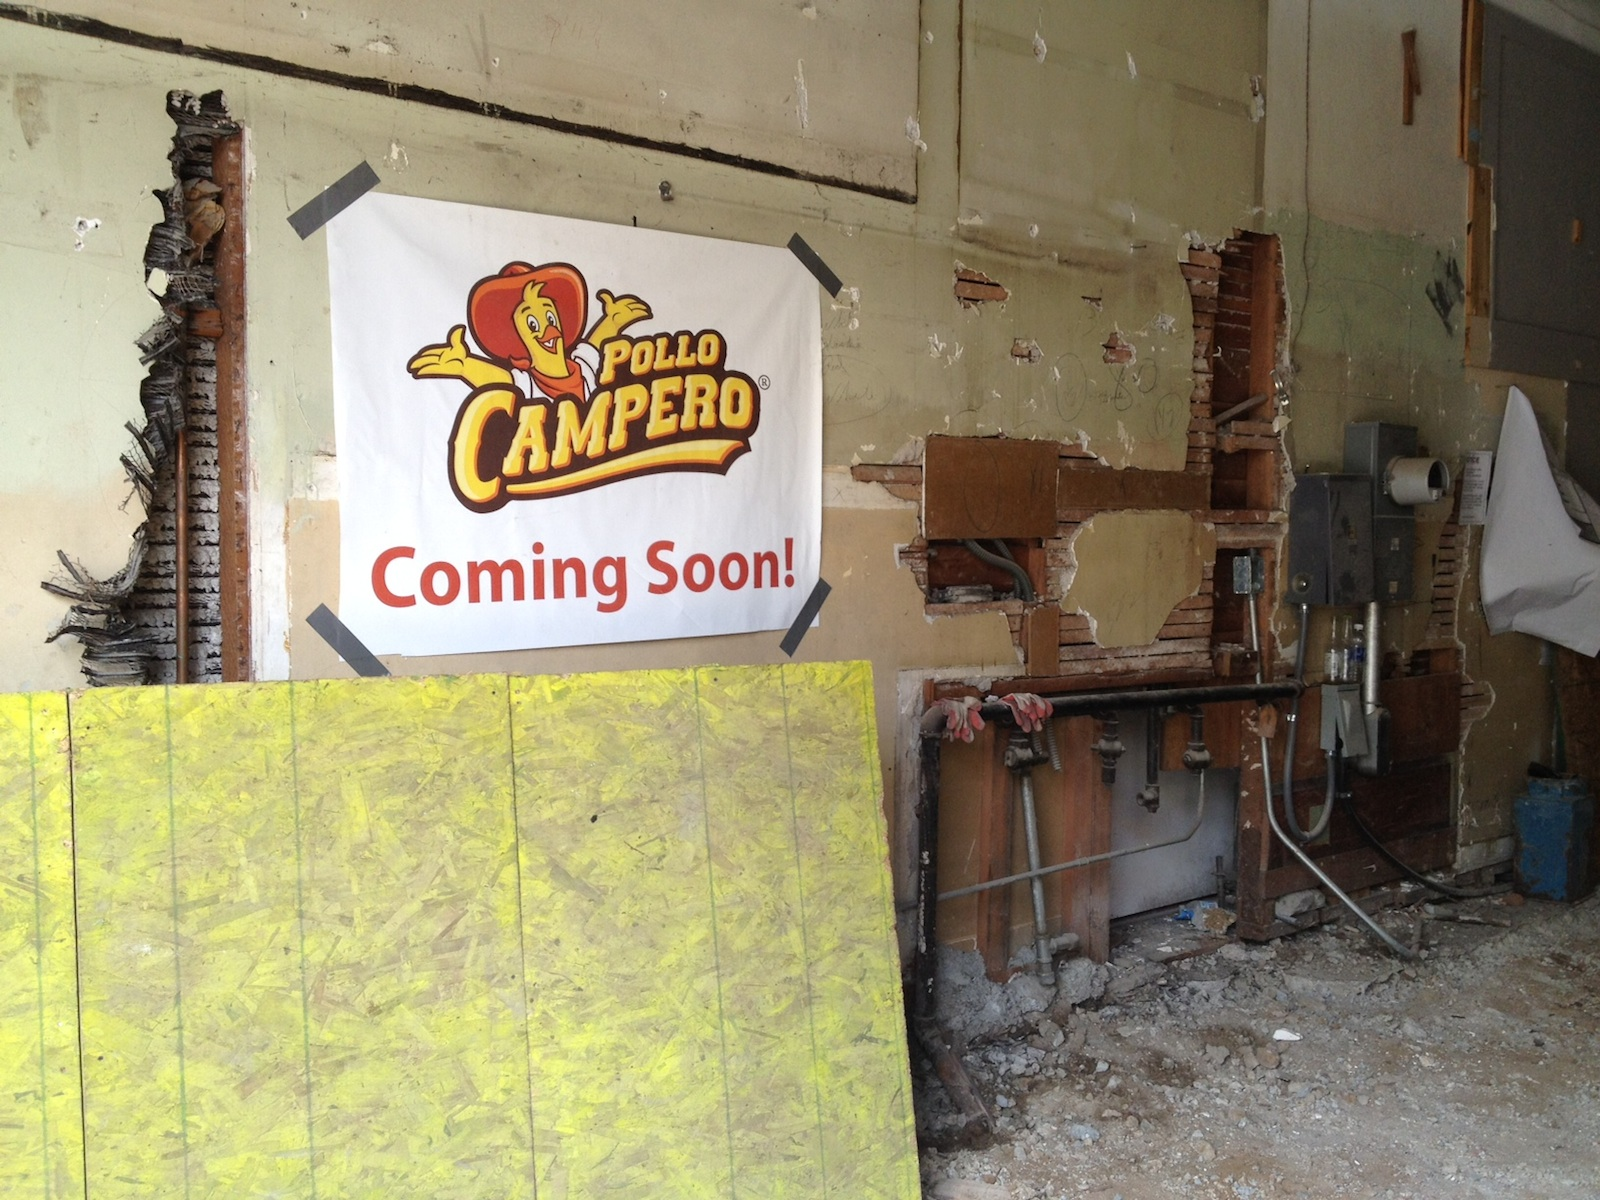 Pollo Campero to Open This Fall